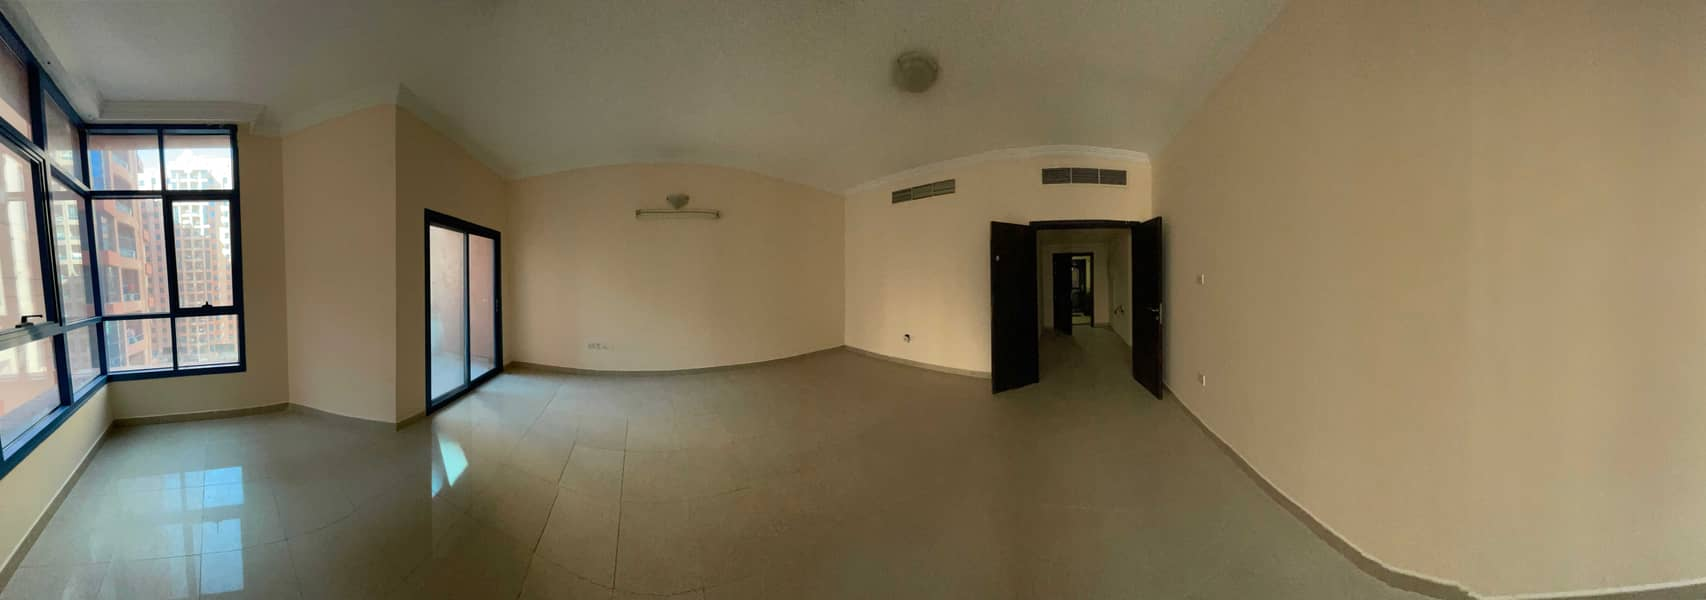 2 BHK For Rent  Naimiya Tower . . . . . . (1813. sqft. )(Flat  Open View)